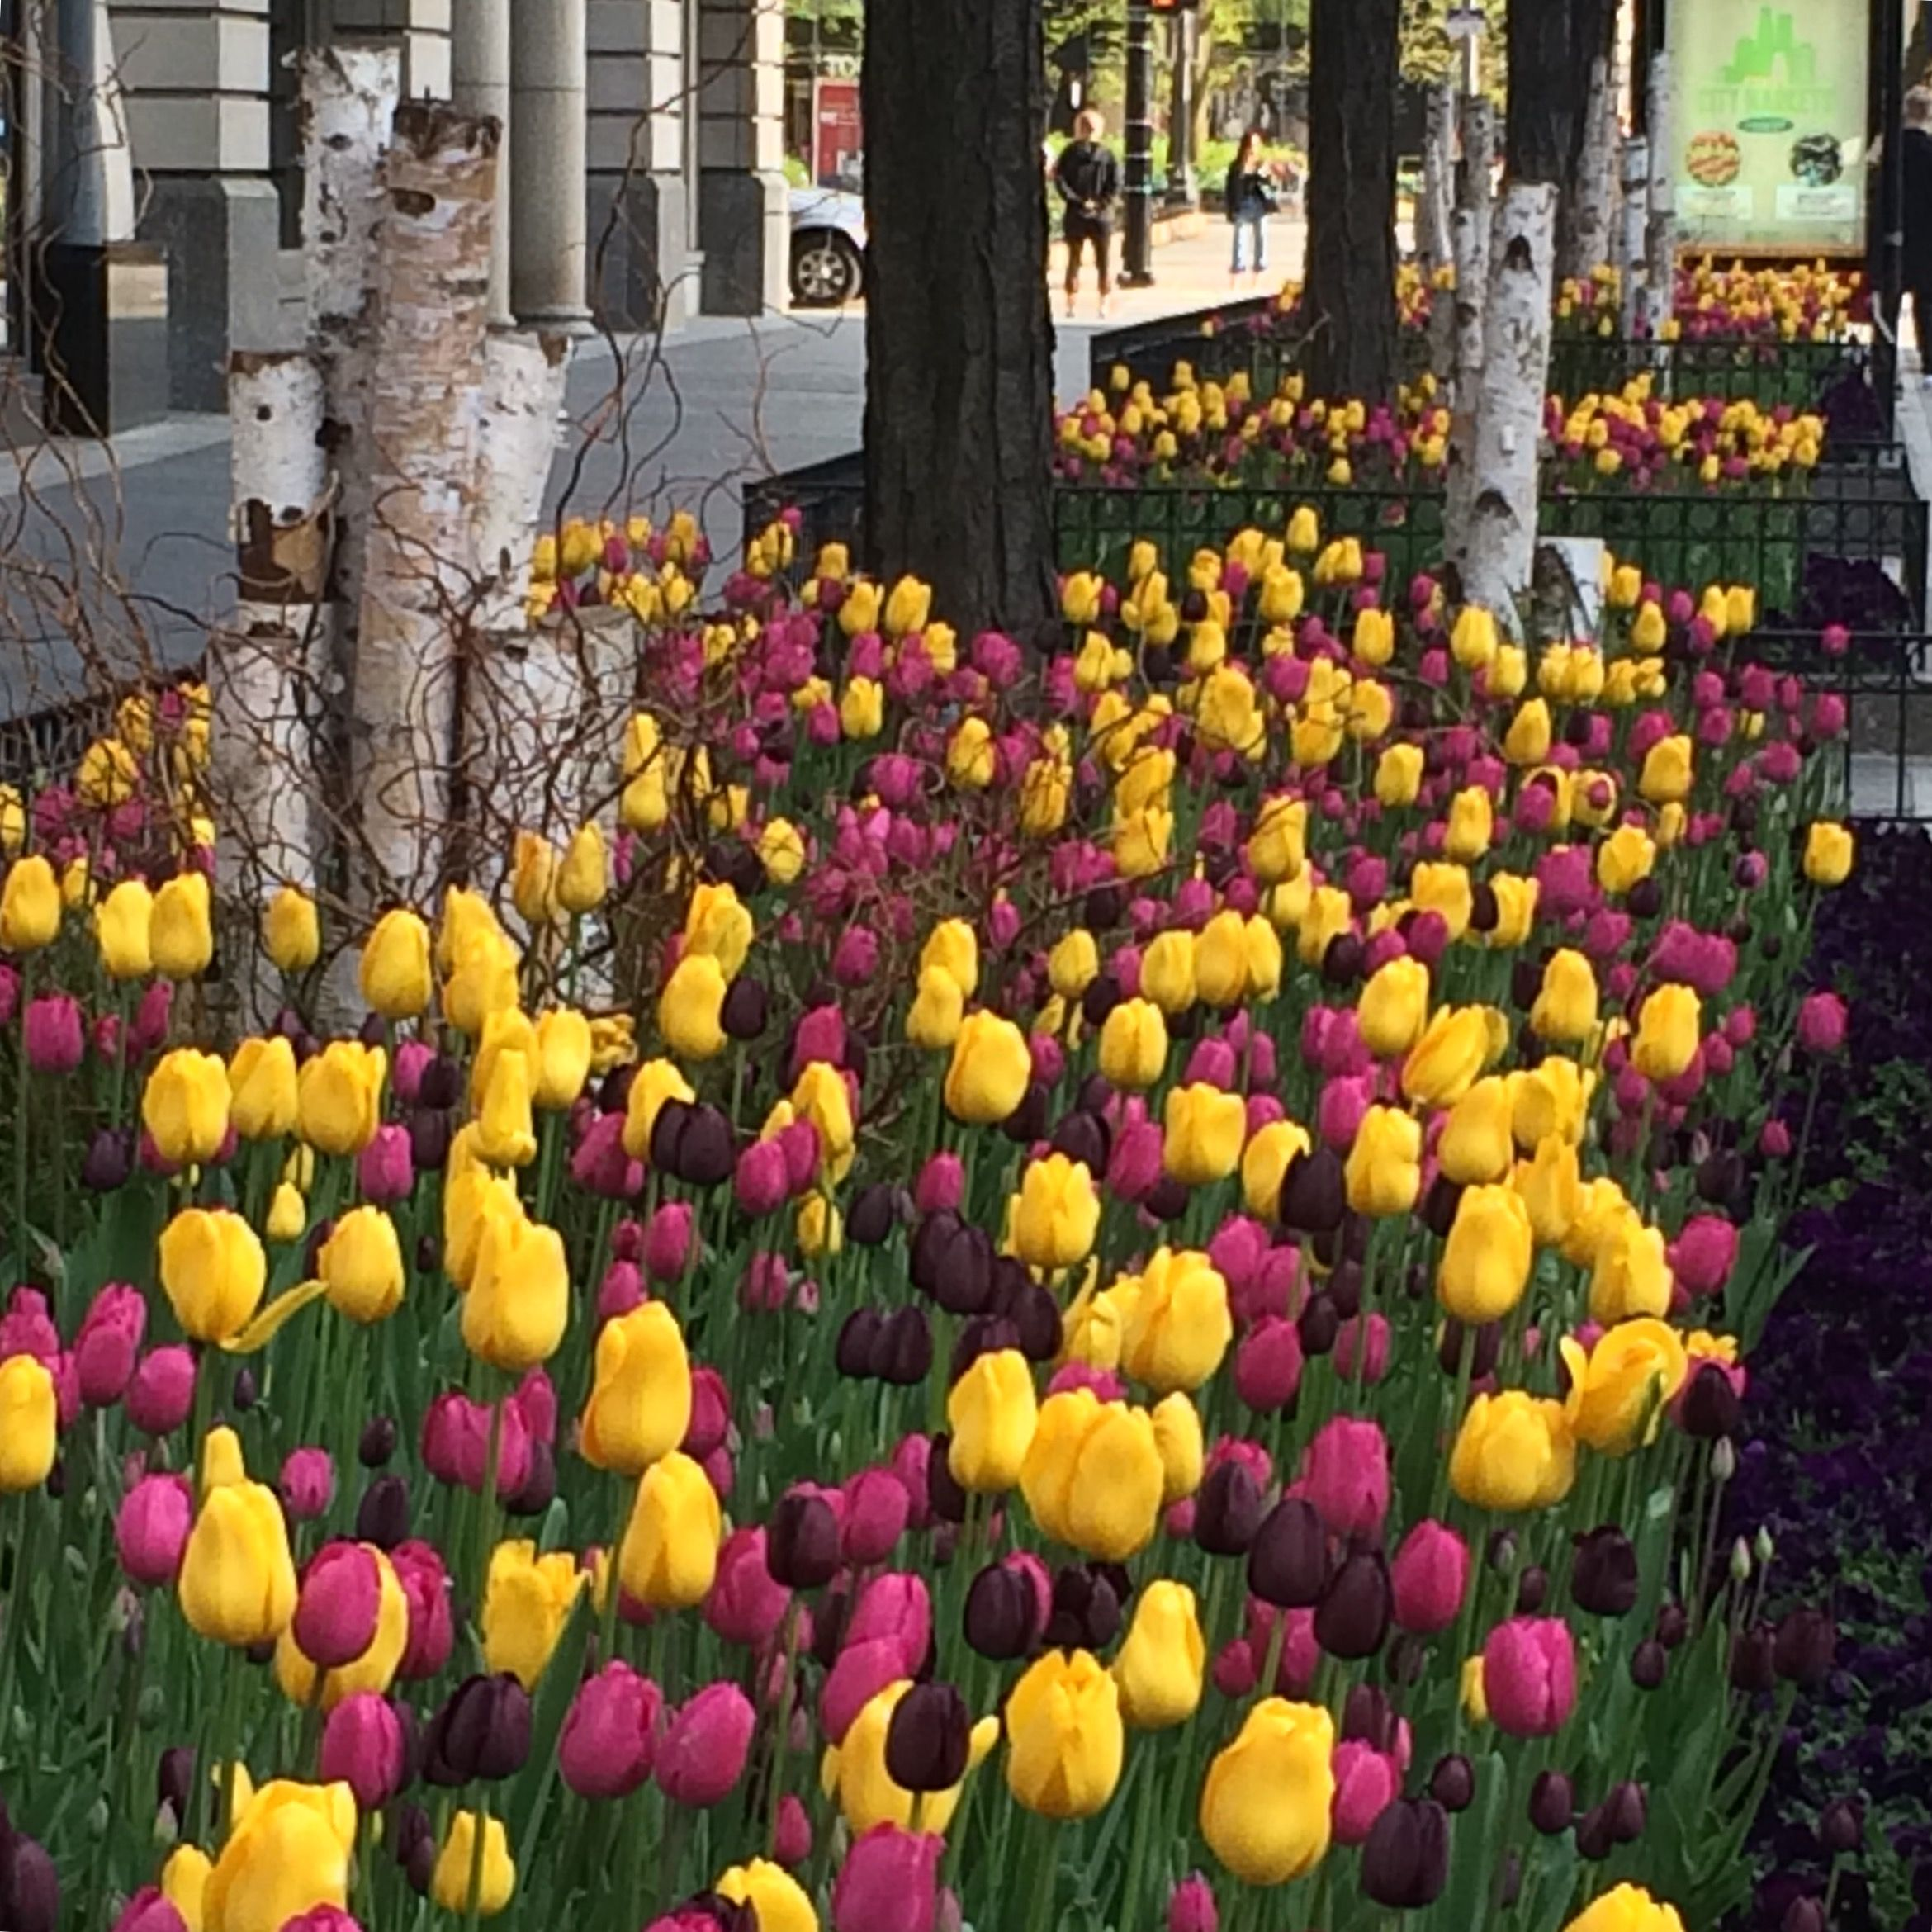 There Are Still A Few Late Blooming Tulips On Michigan Avenue Insta Flowers Magmile Magnificentmile Mychicago Purple Flowers Yellow Flowers Spring Flowers